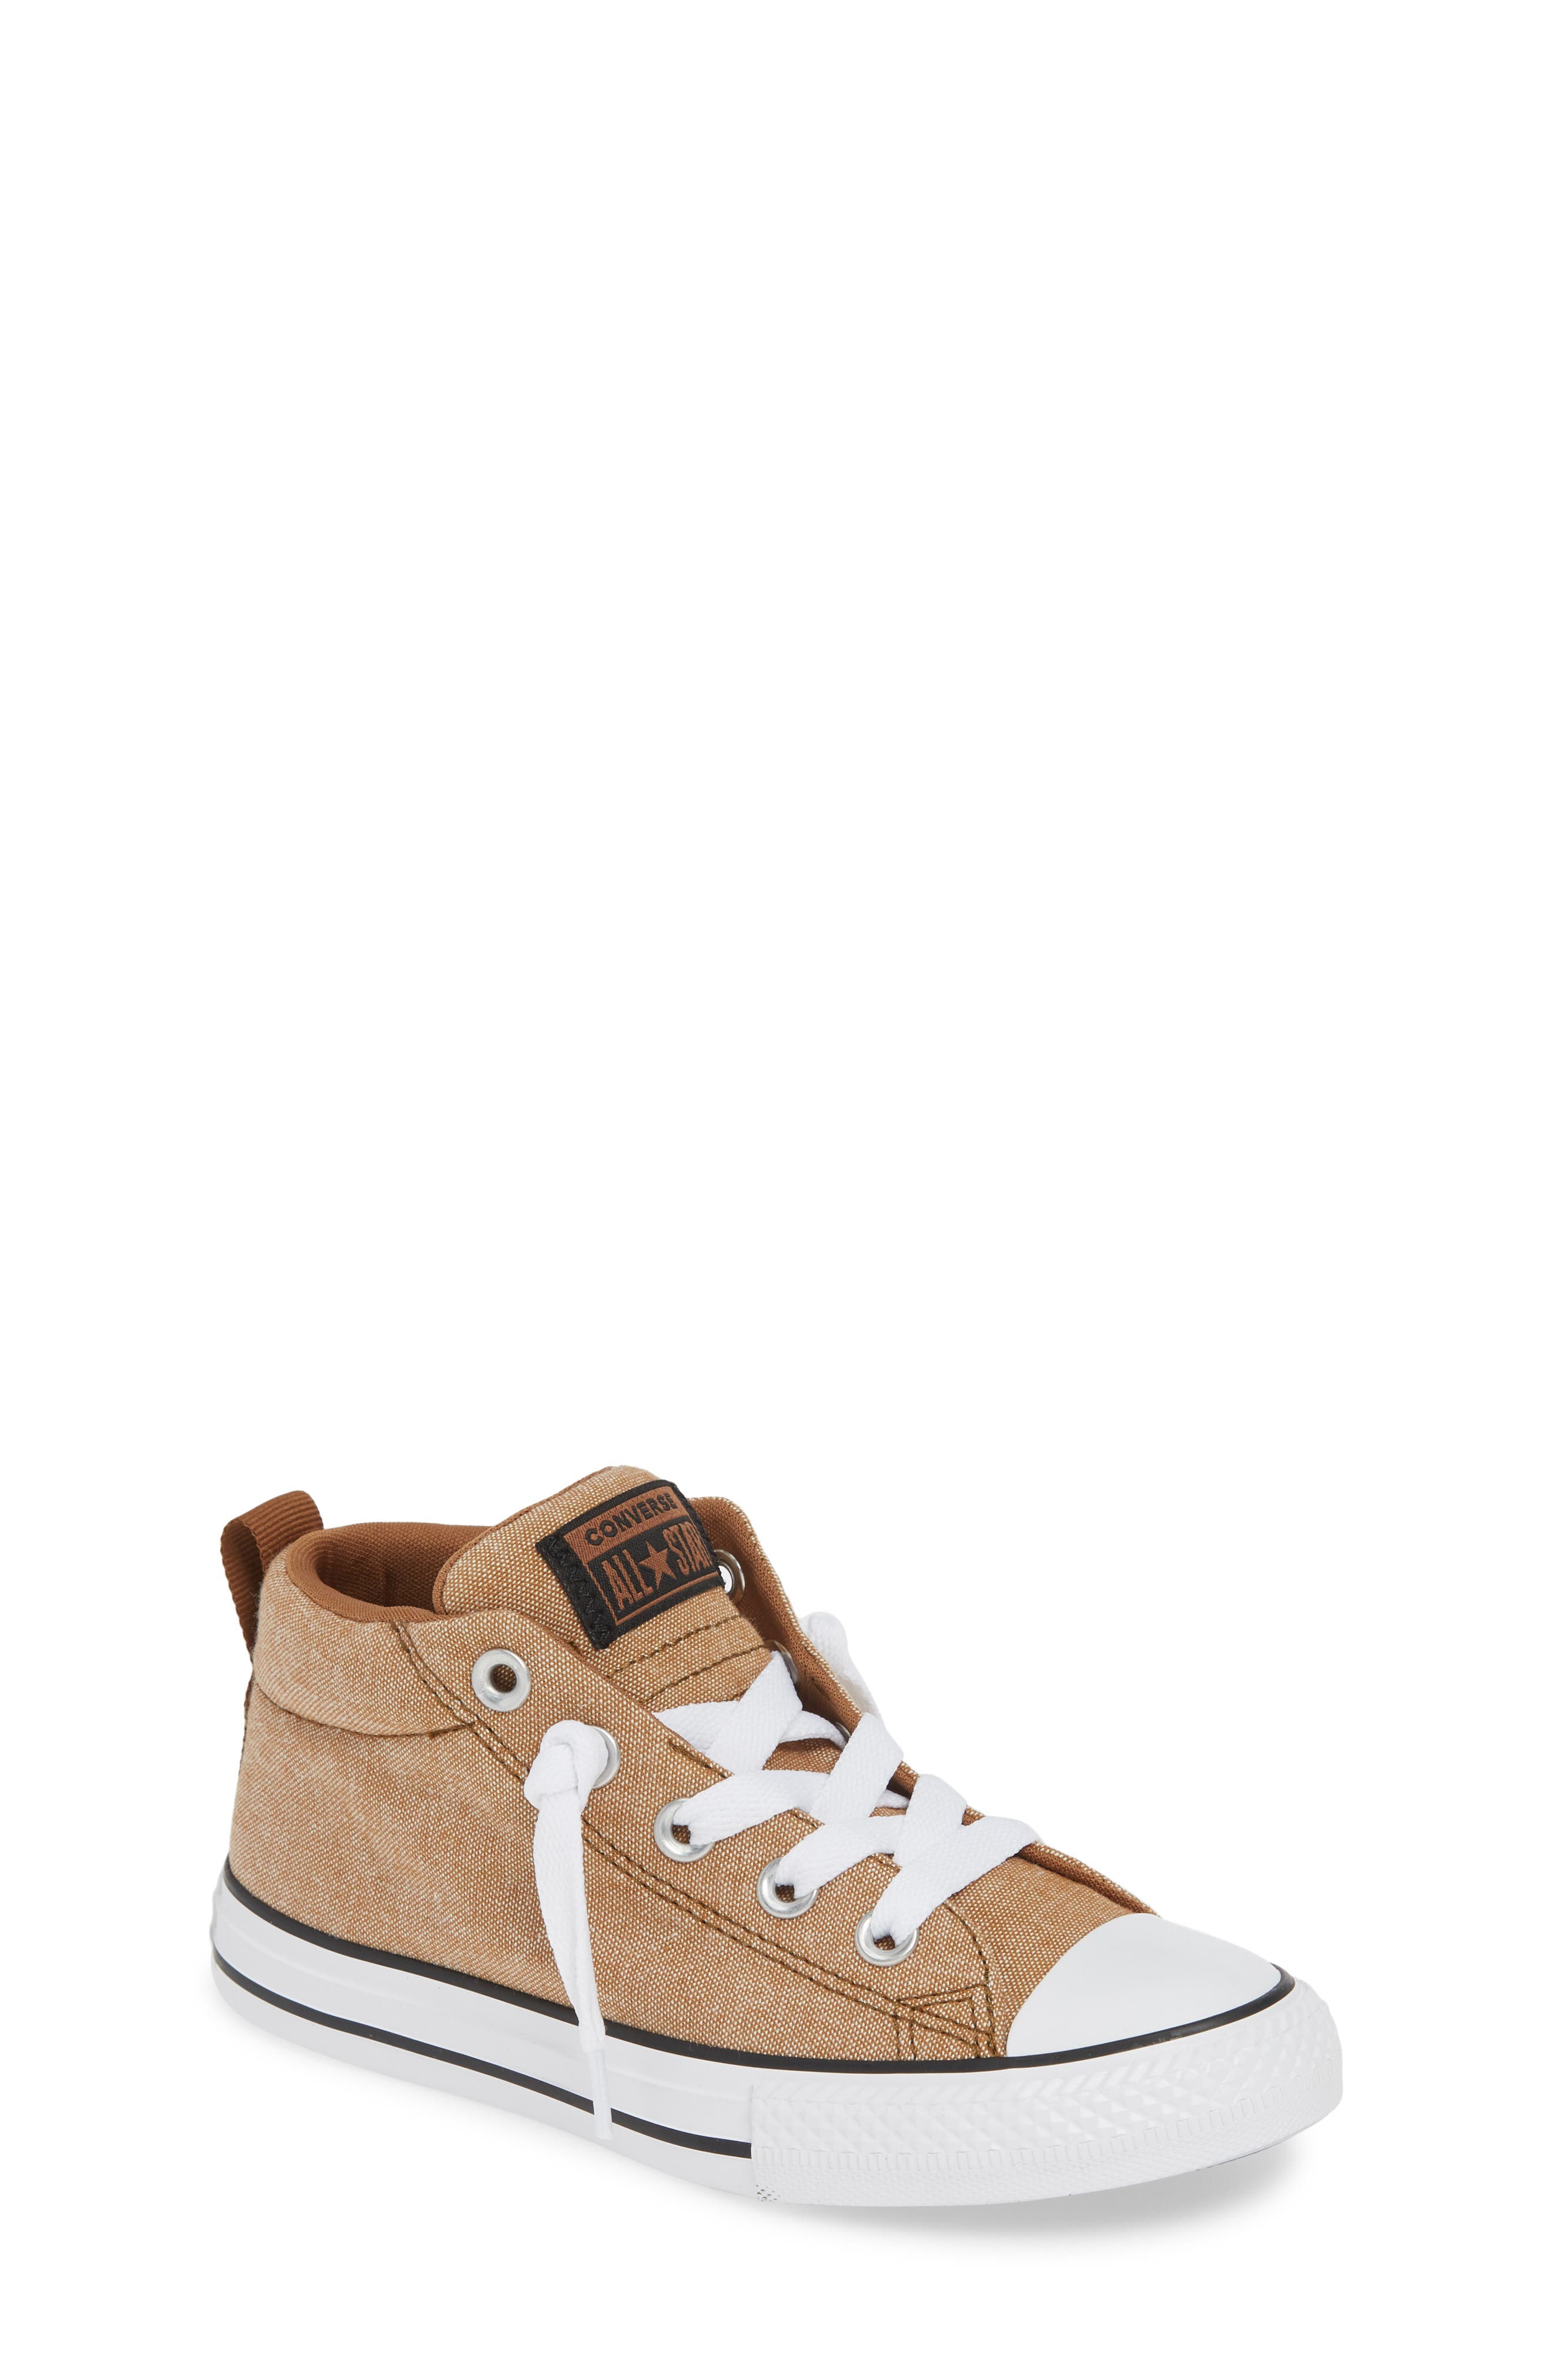 ,                             Chuck Taylor<sup>®</sup> All Star<sup>®</sup> Street Mid Top Sneaker,                             Main thumbnail 1, color,                             ALE BROWN/ BLACK/ WHITE